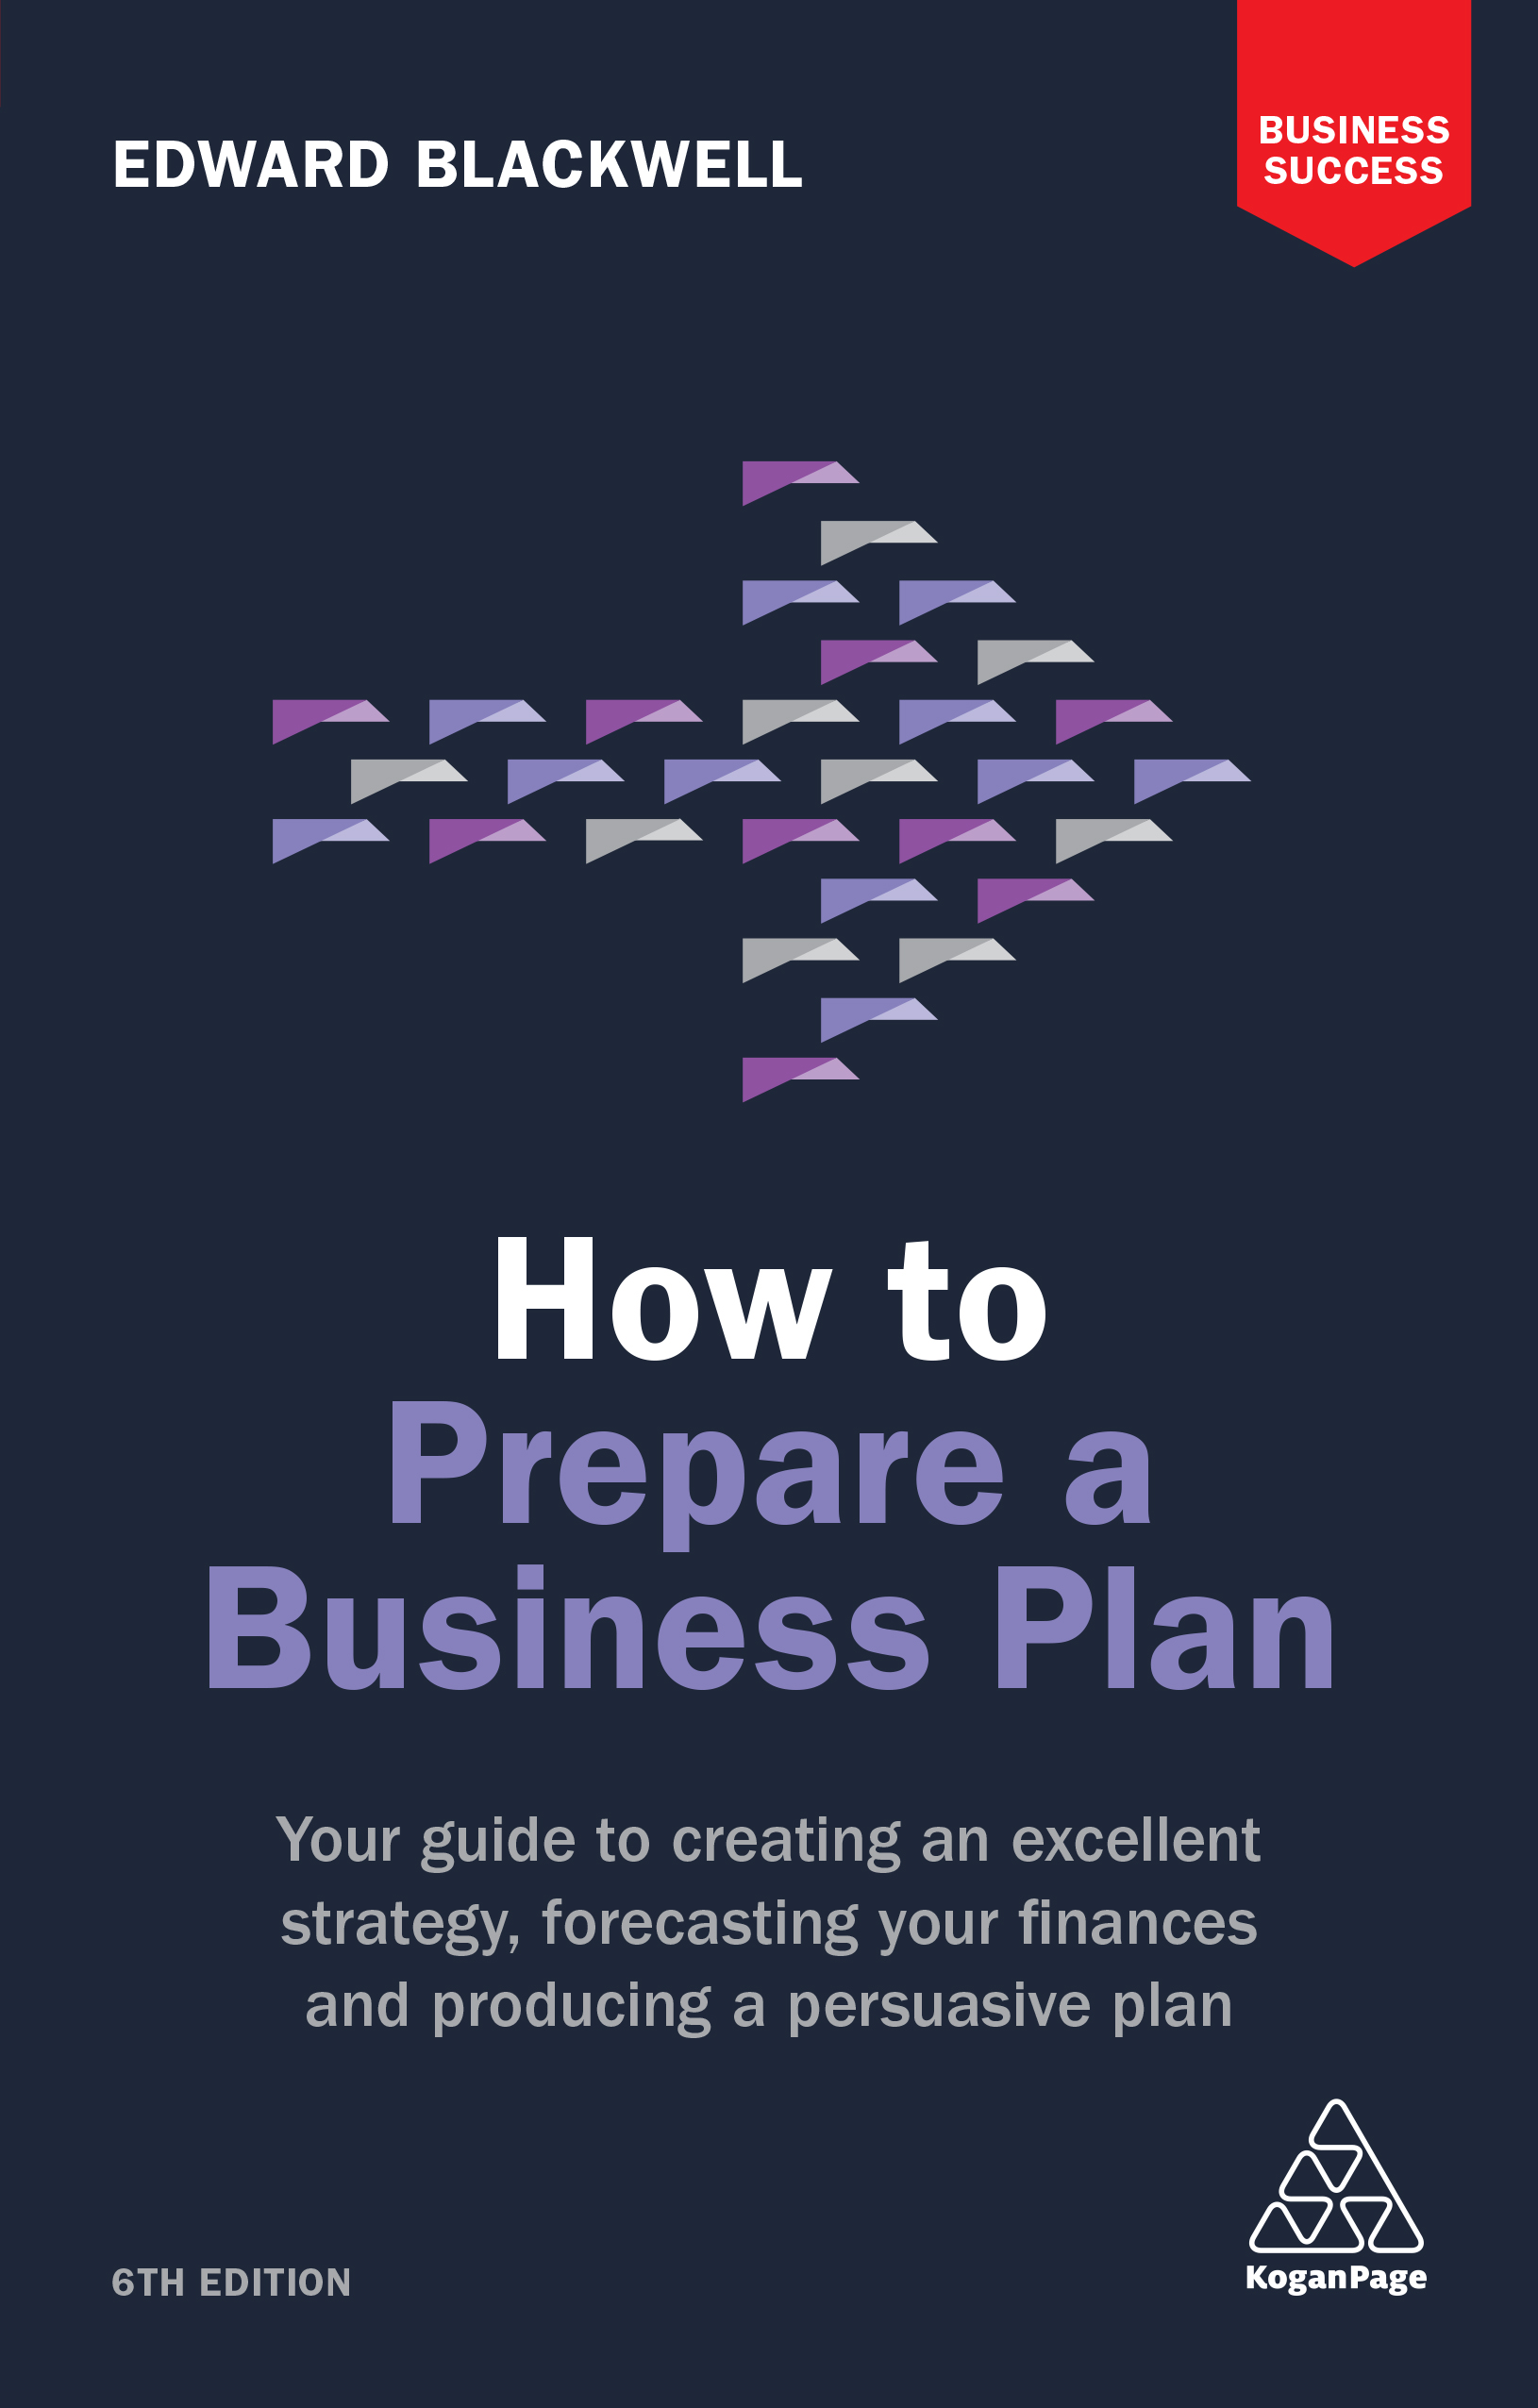 Download Ebook How to Prepare a Business Plan (6th ed.) by Edward Blackwell Pdf